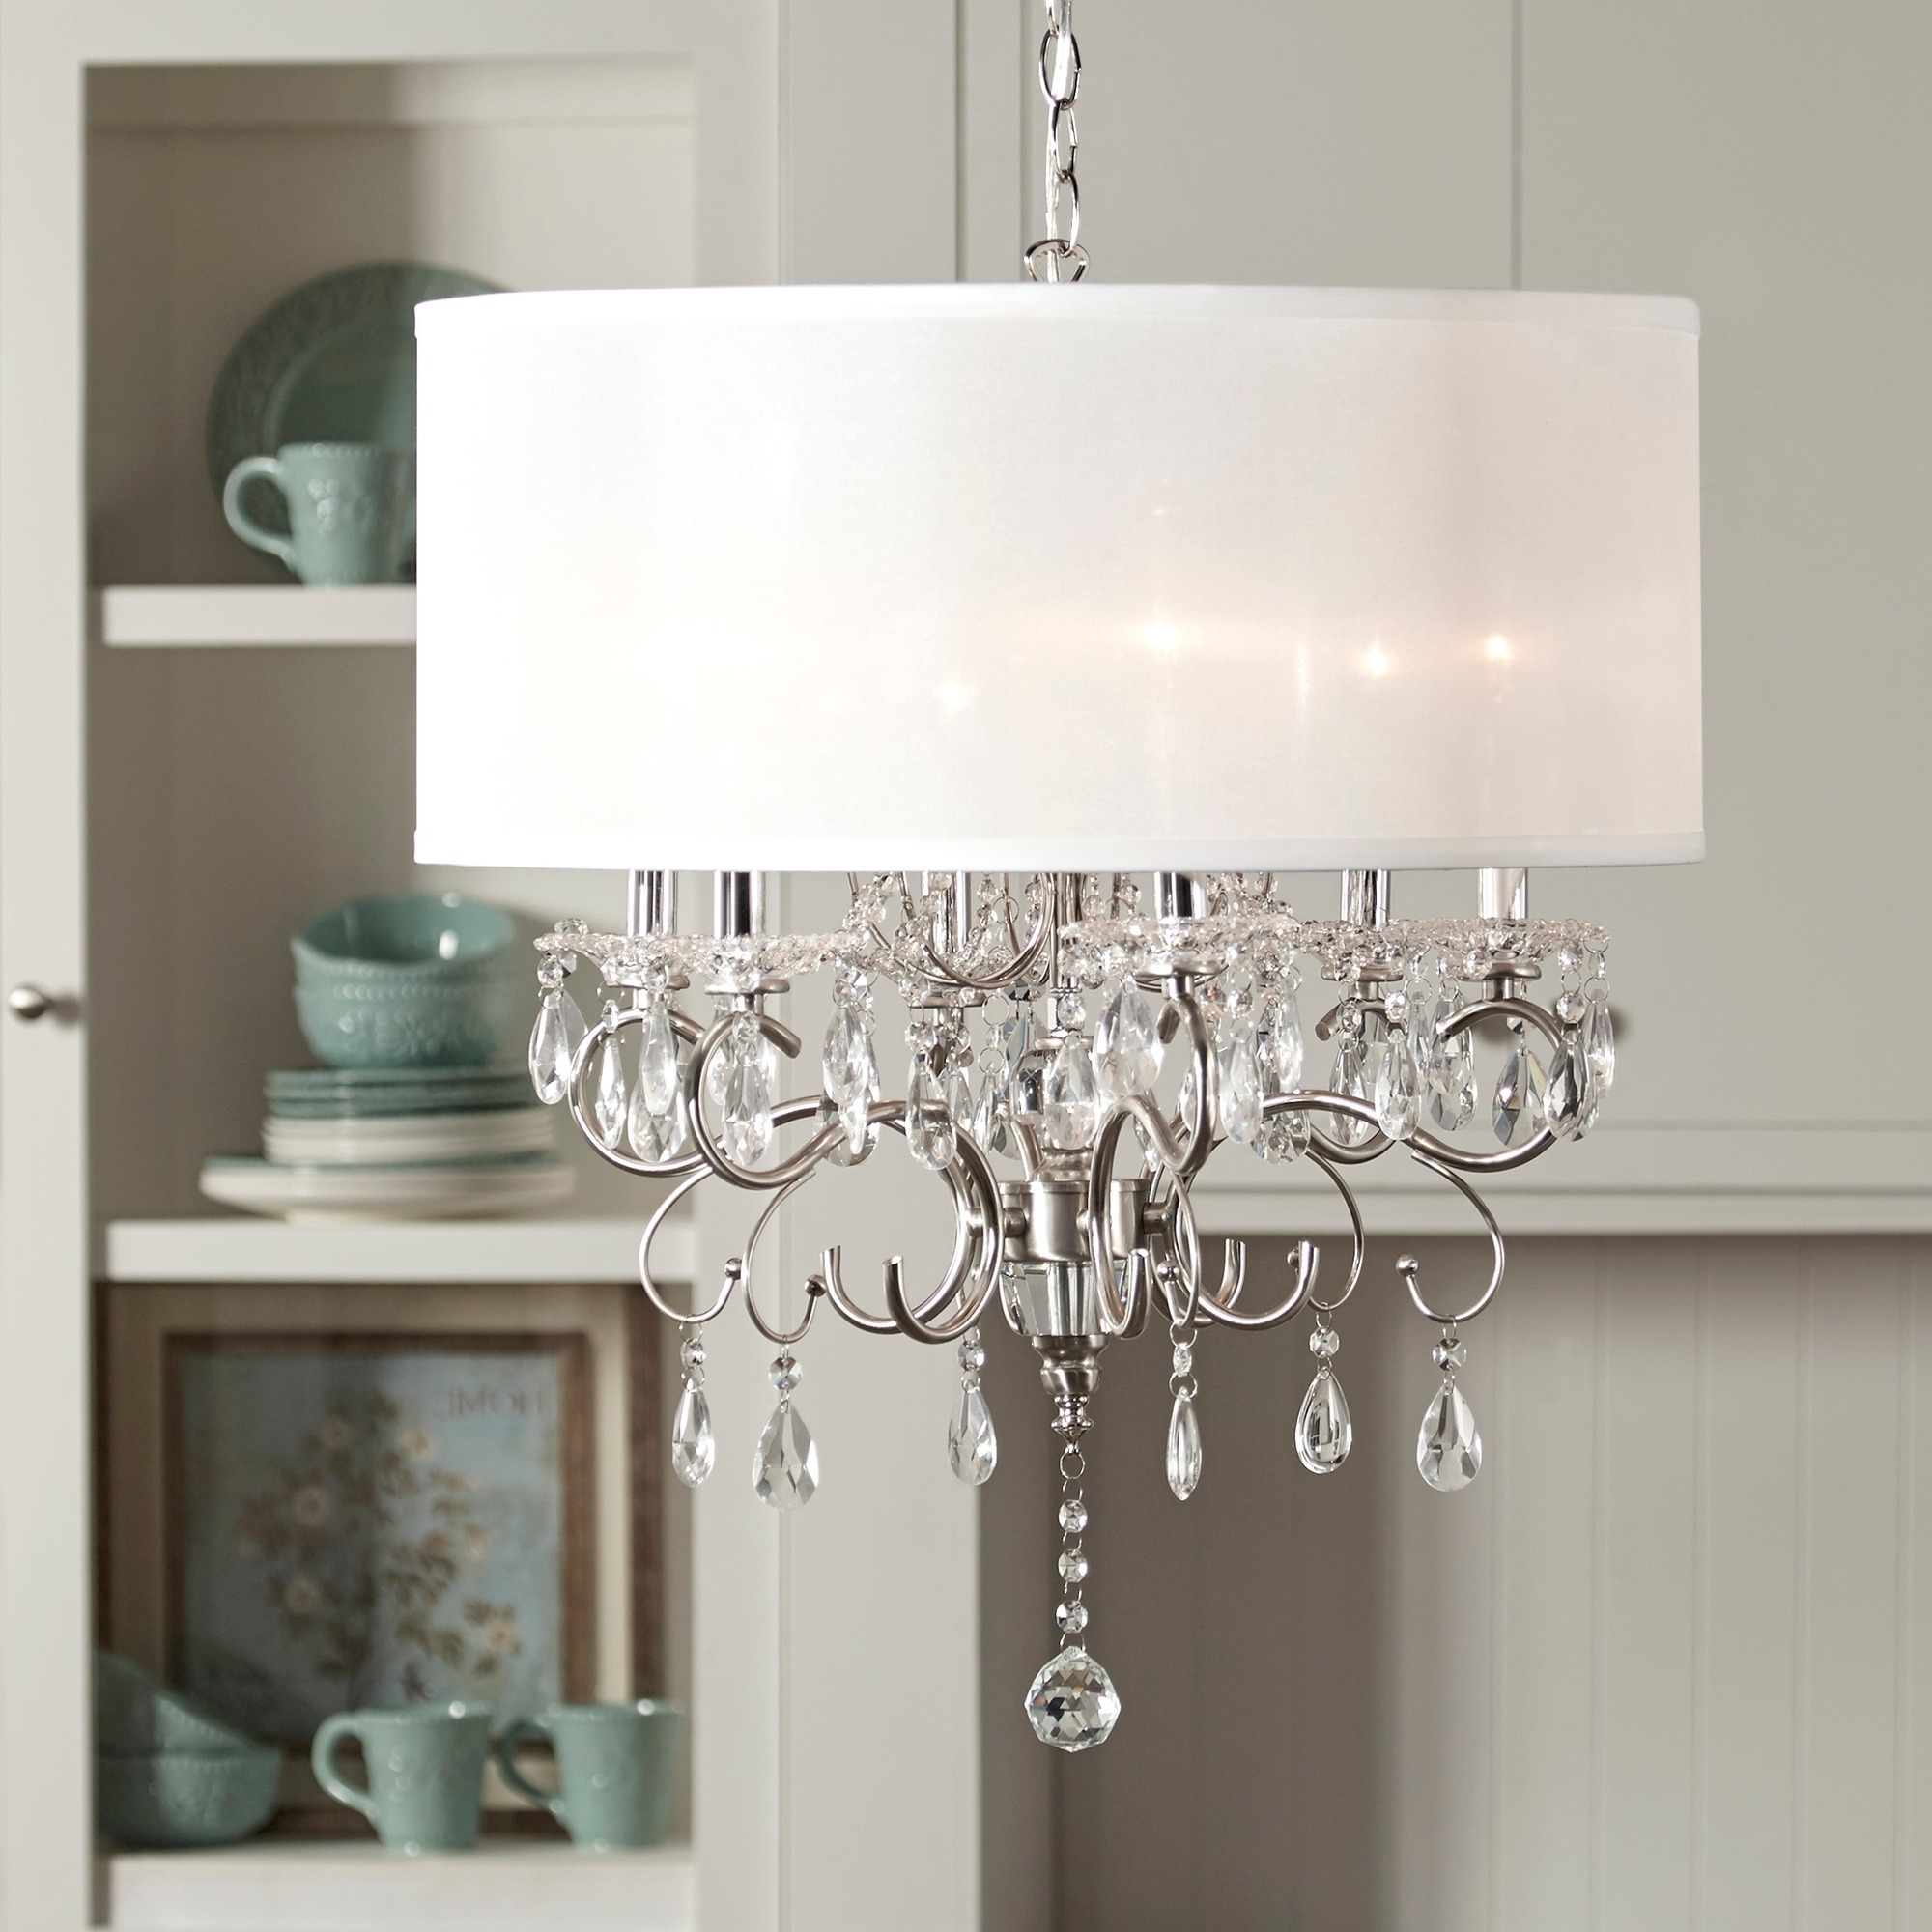 Widely Used Excellent Light Shades Of Grey Html Purple Names Shade Blue With Lampshade Chandeliers (View 20 of 20)